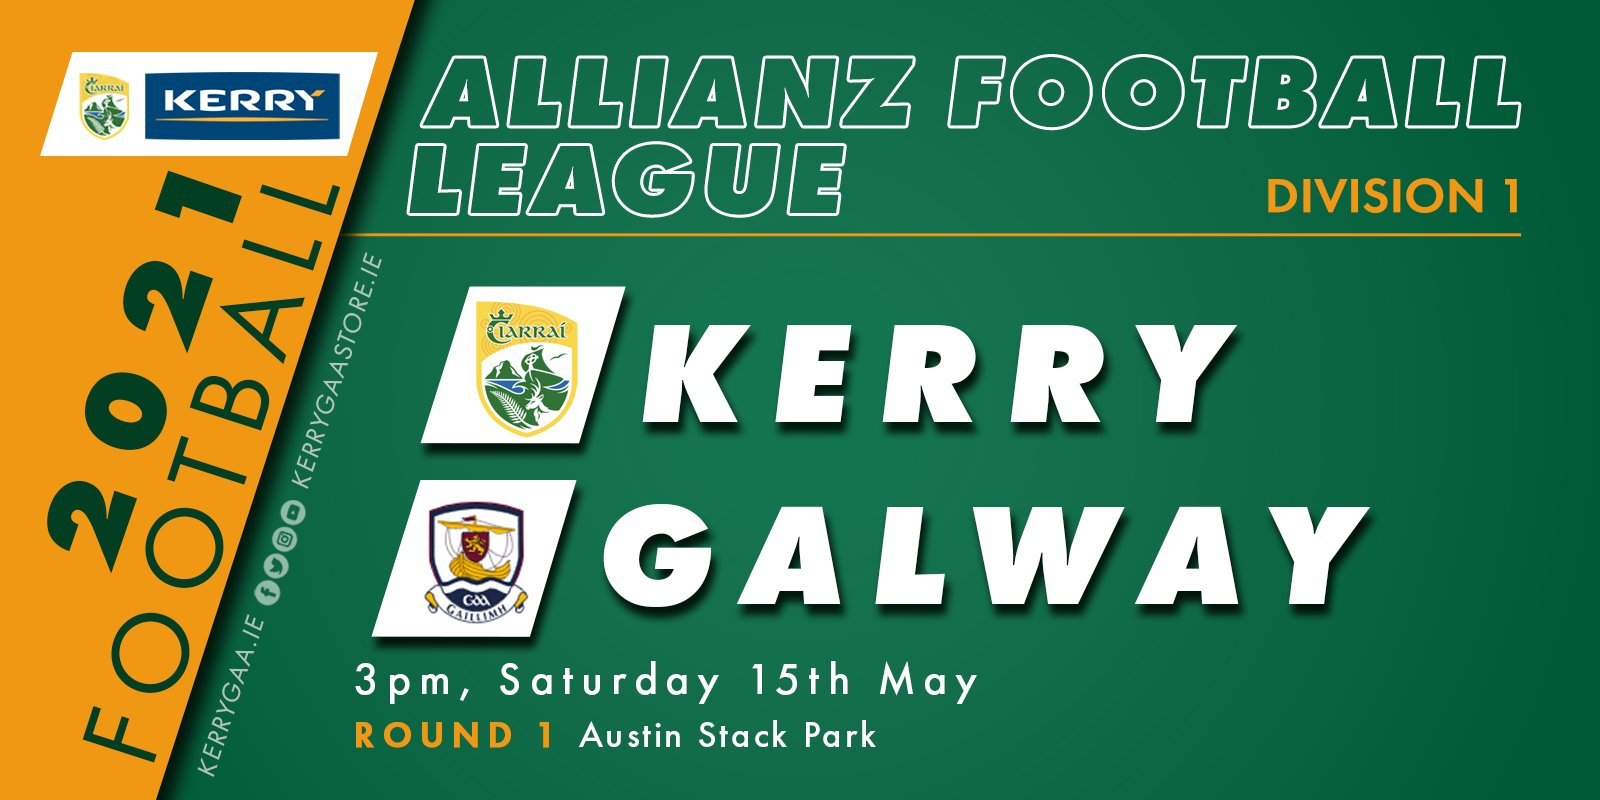 Match Programme: Kerry vs Galway